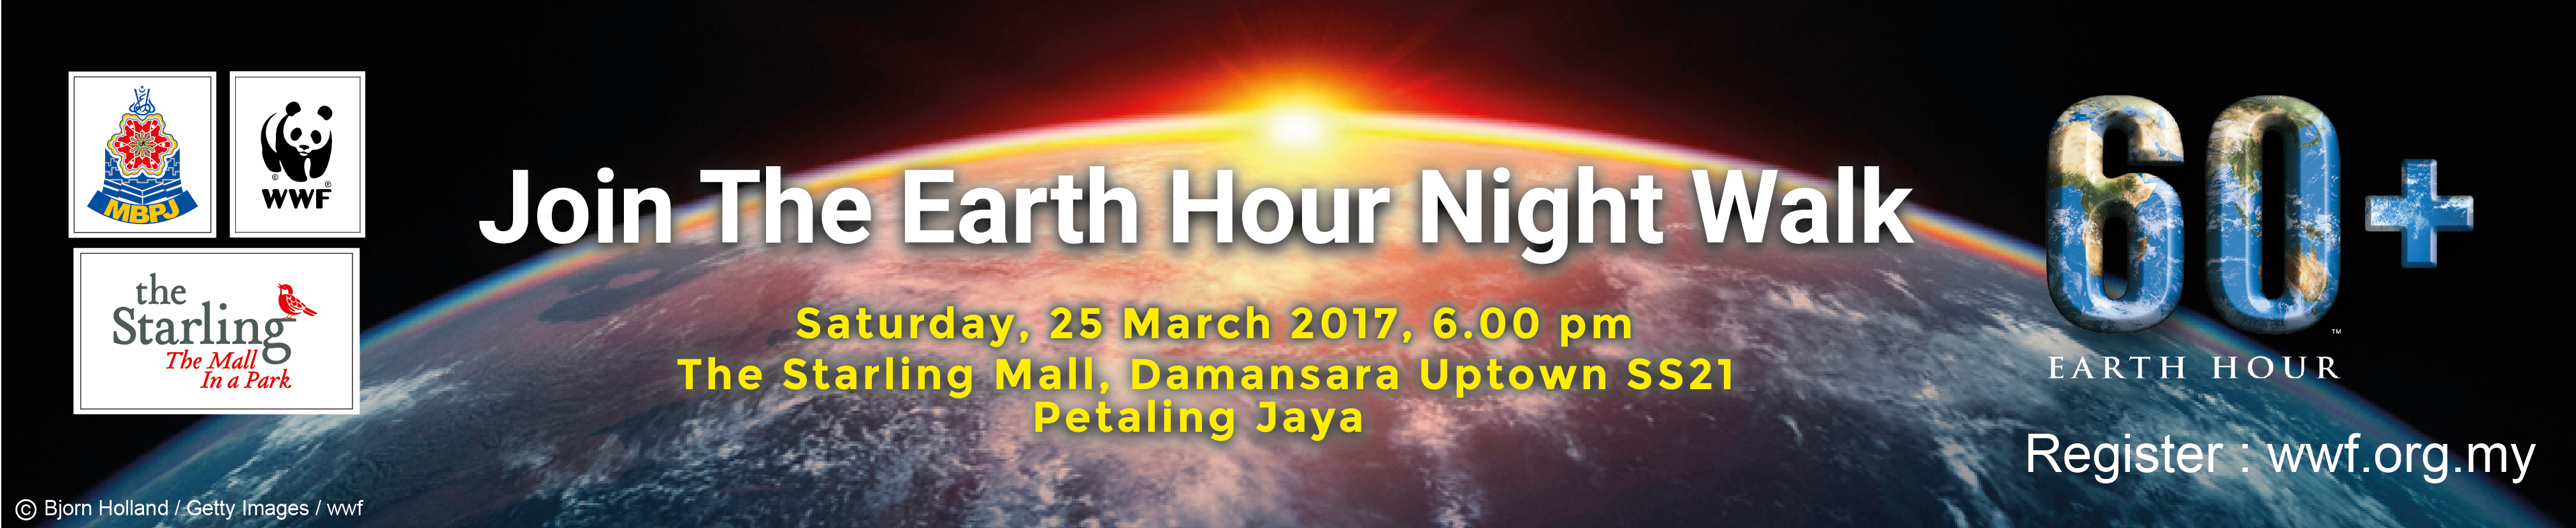 Banner Earth Hour 2017